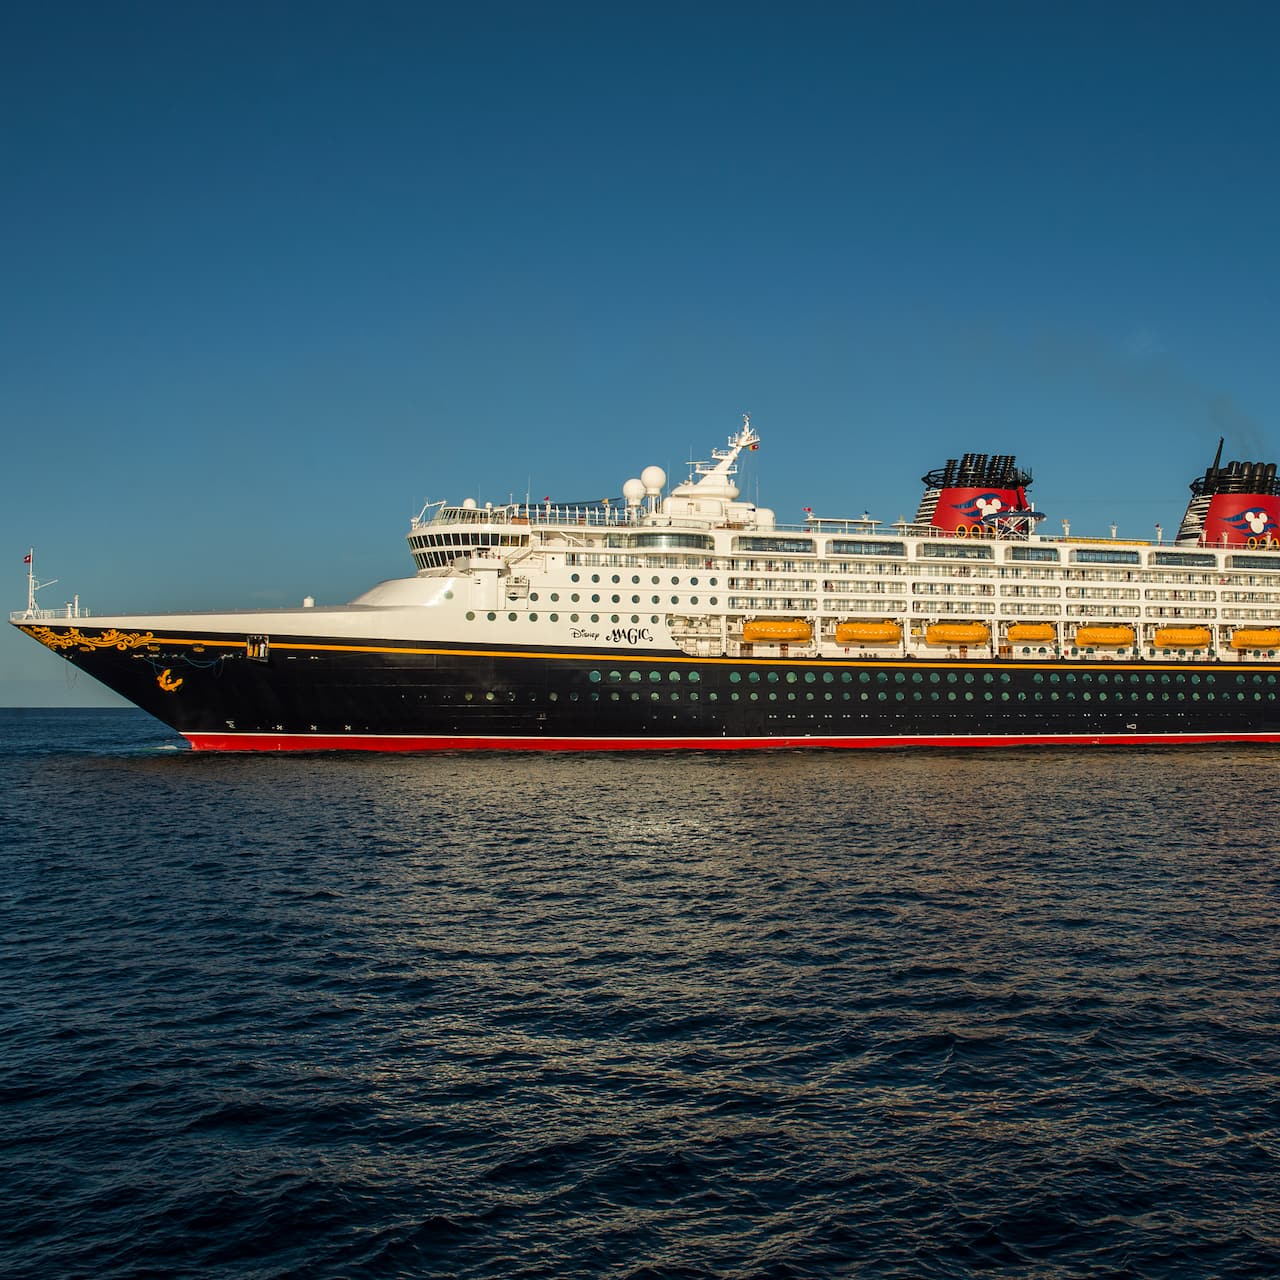 The Disney Cruise Line cruise ship, Disney Magic, at sea